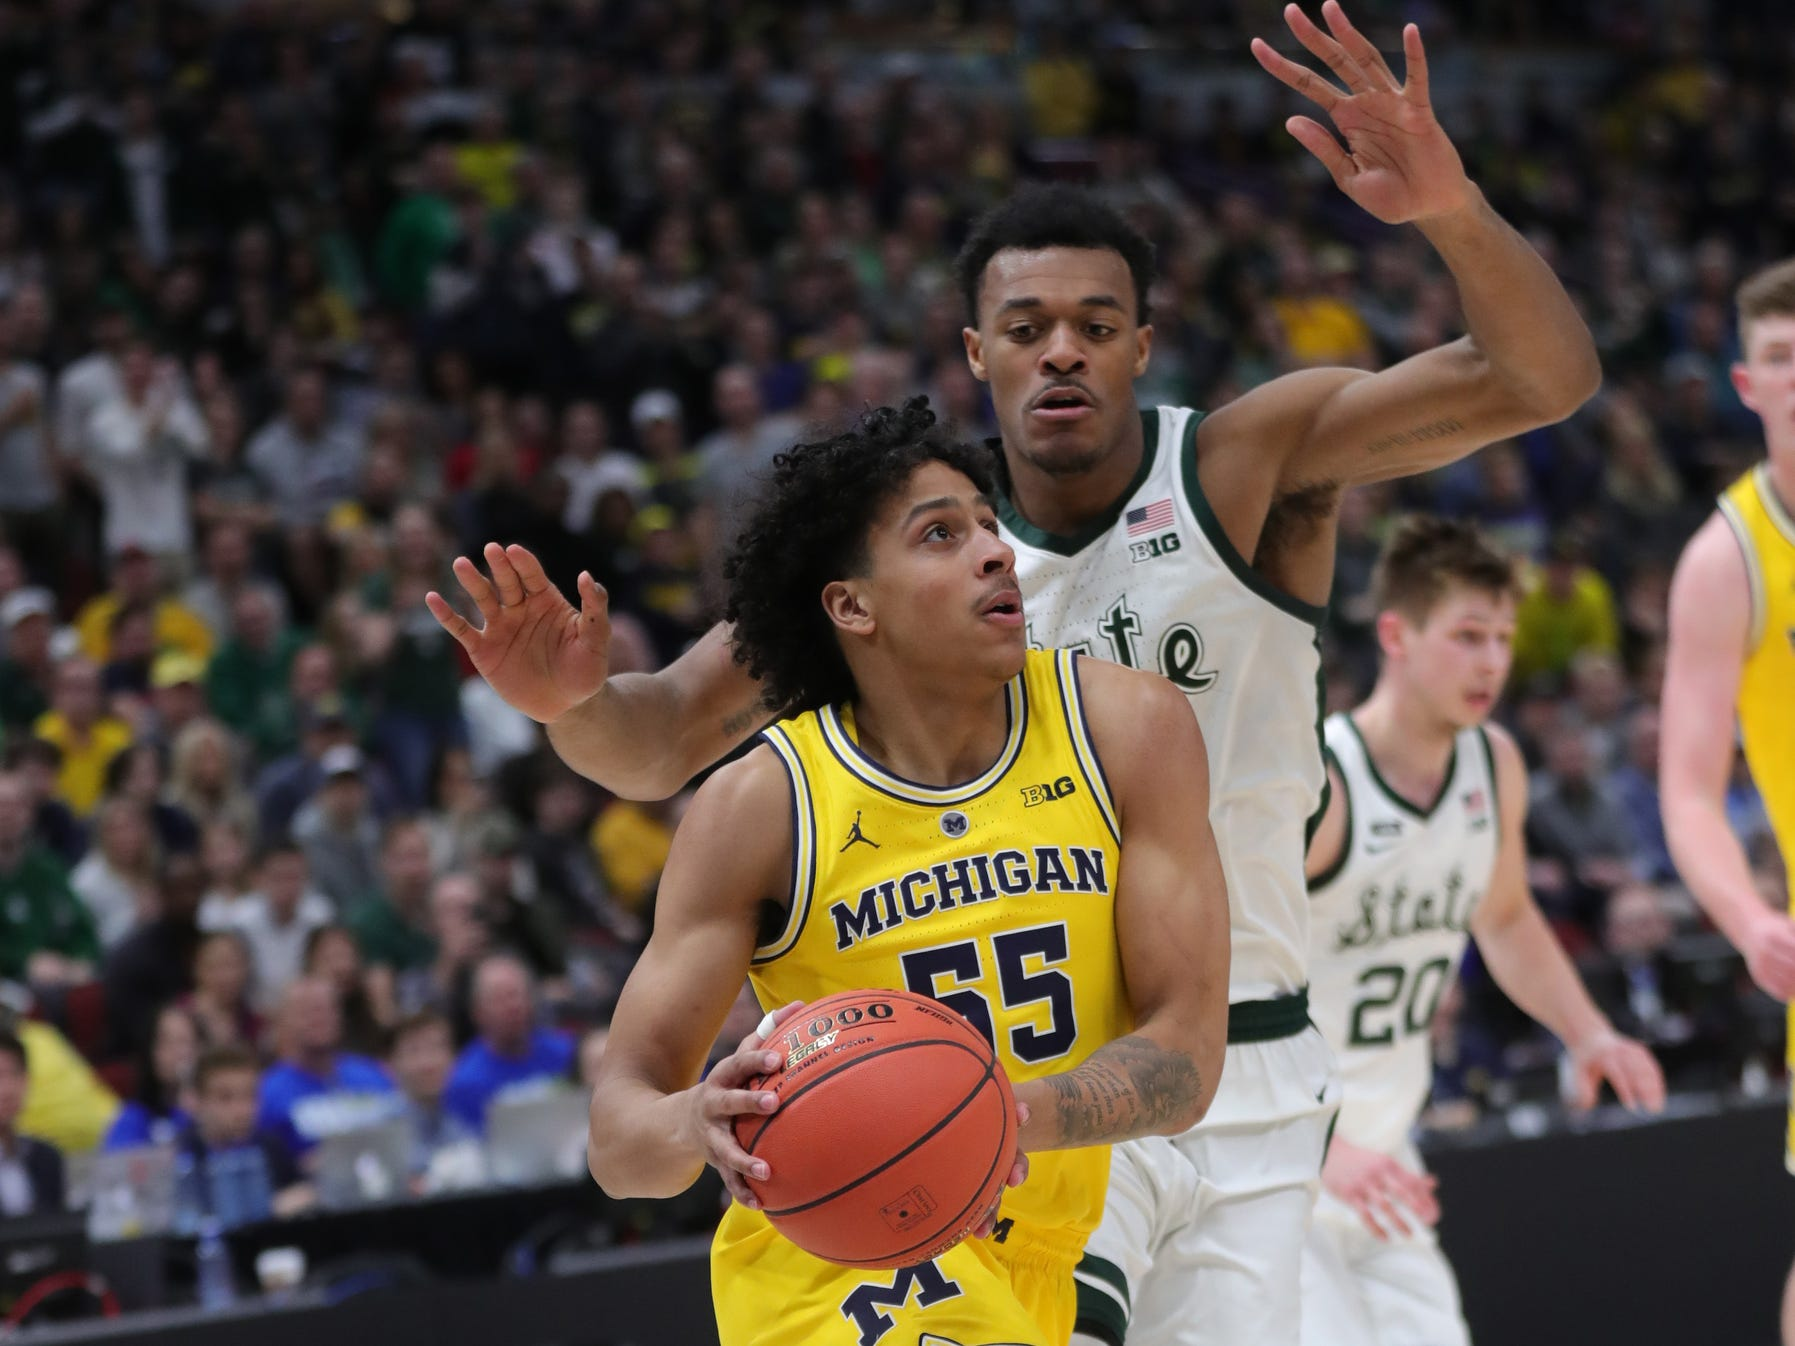 Michigan State's Xavier Tillman defends Michigan's Eli Brooks during the Big Ten tournament championship Sunday, March 17, 2019 in Chicago.